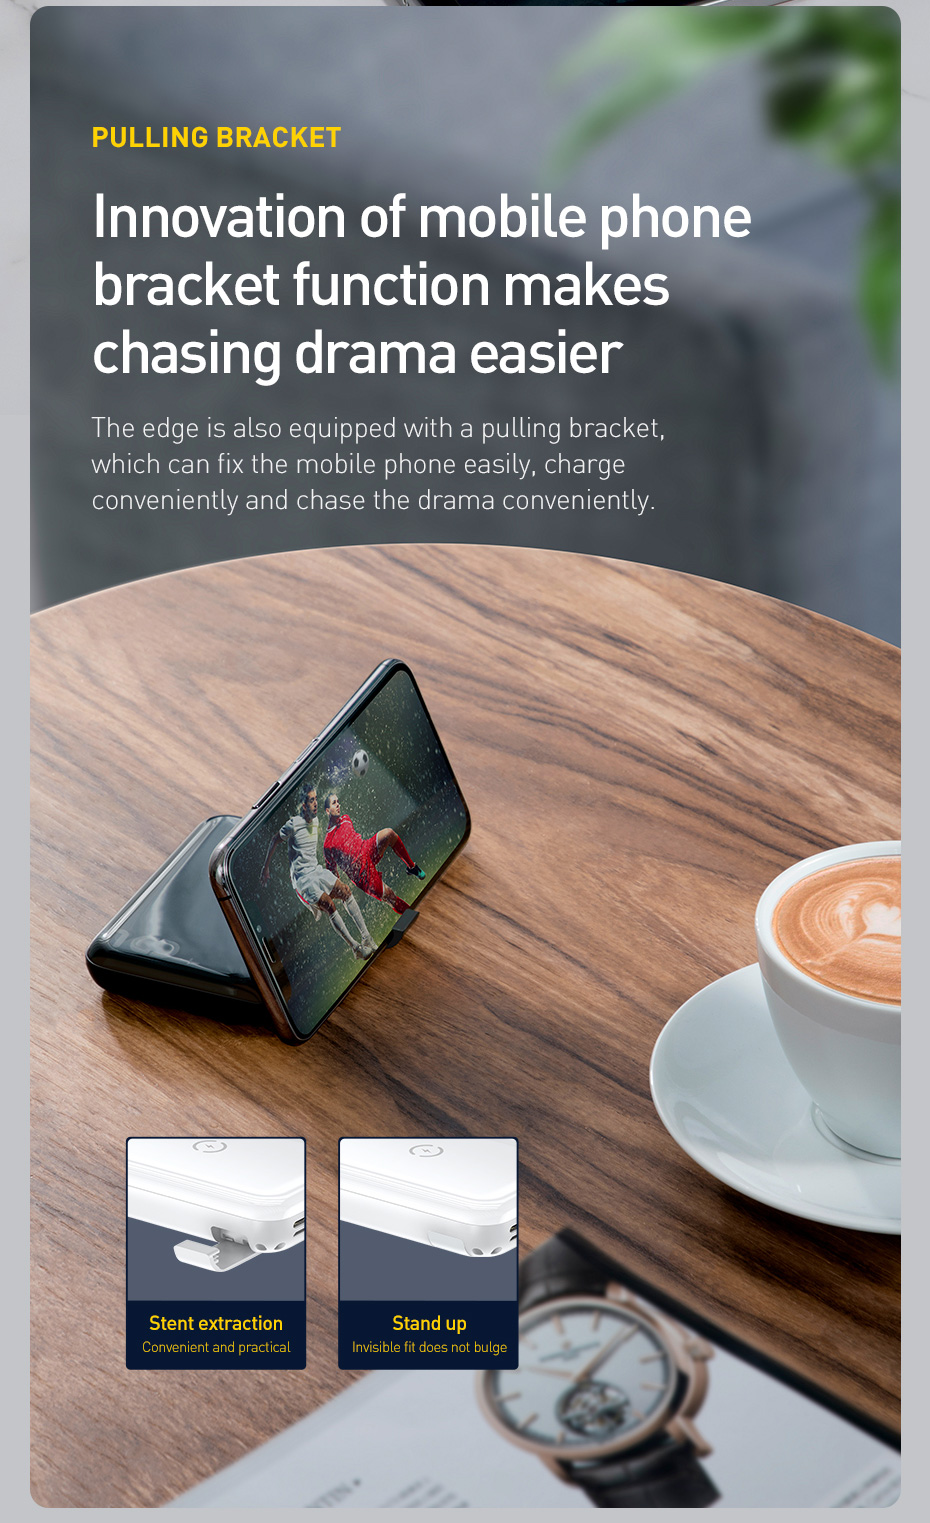 Baseus 10000mAh Qi Wireless Charger Power Bank for iPhone Samsung Huawei Powerbank PD Quick Charge 3.0 Portable External Battery 16